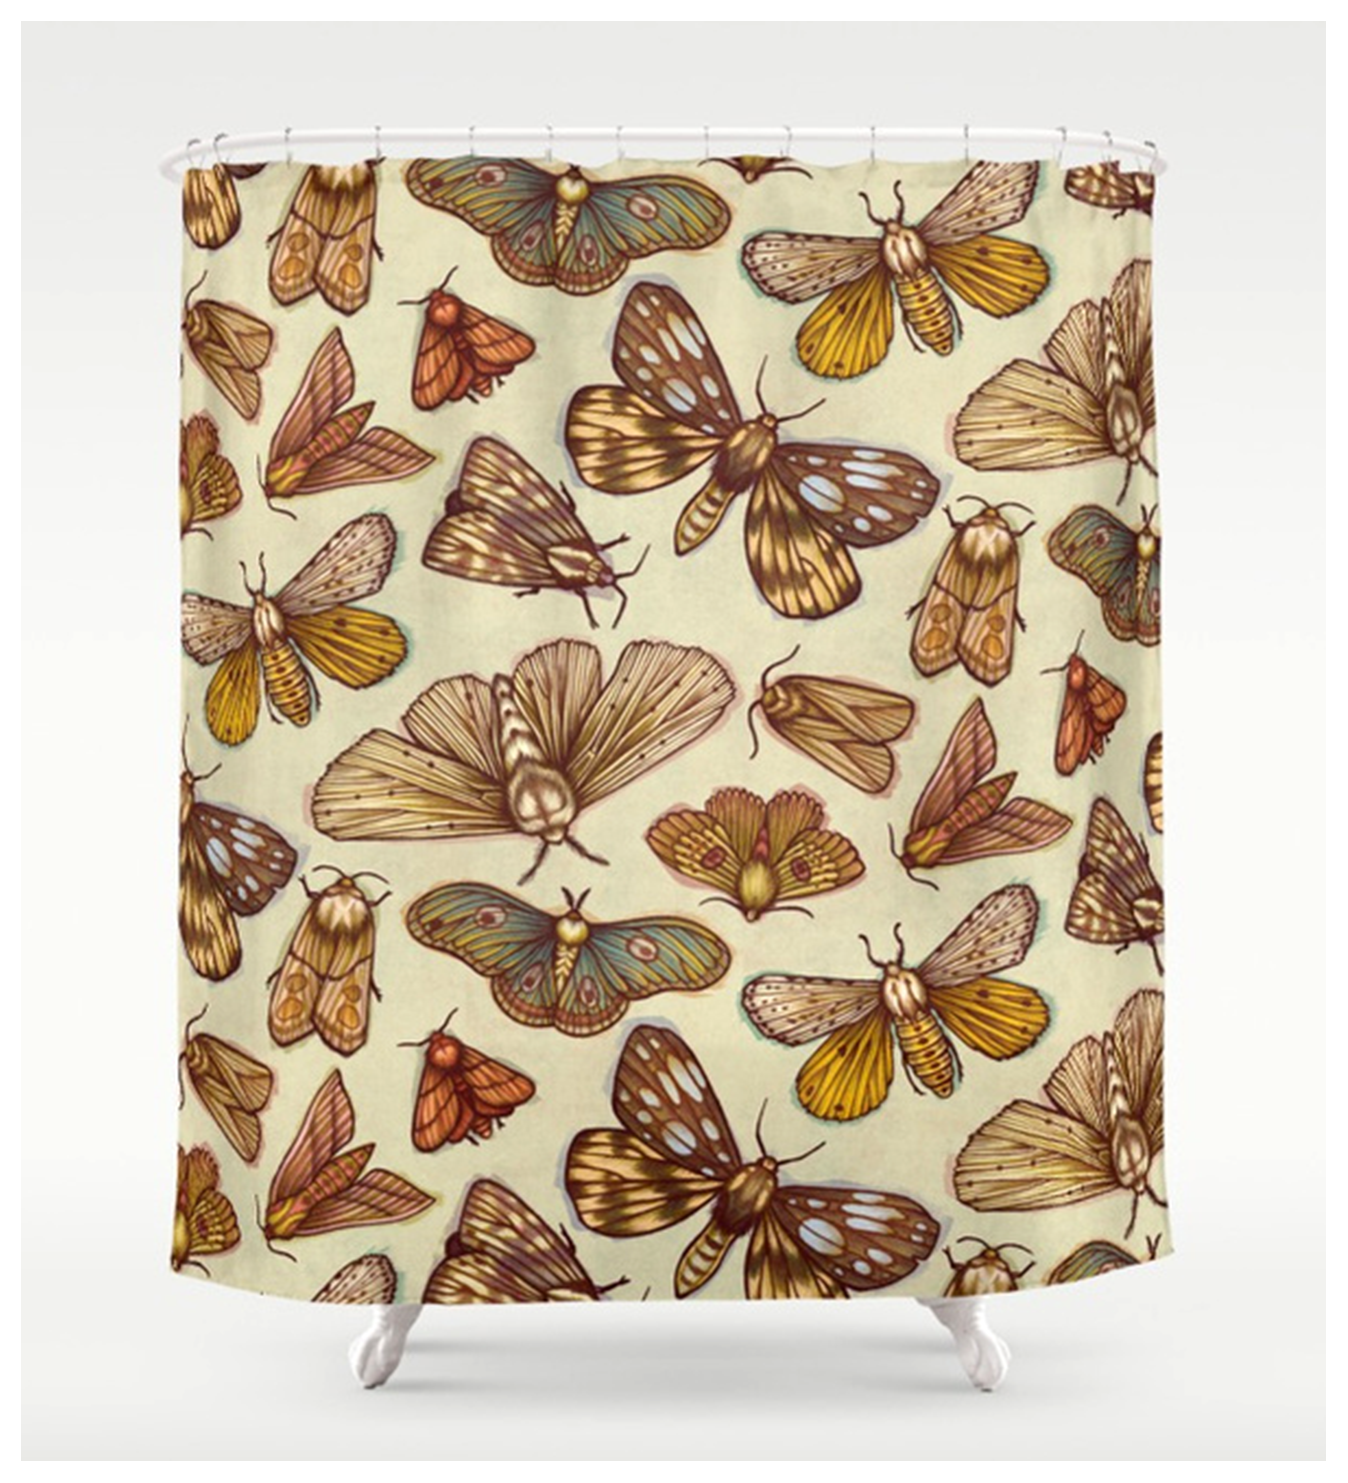 moth-pattern-tww-shower-curtains.png